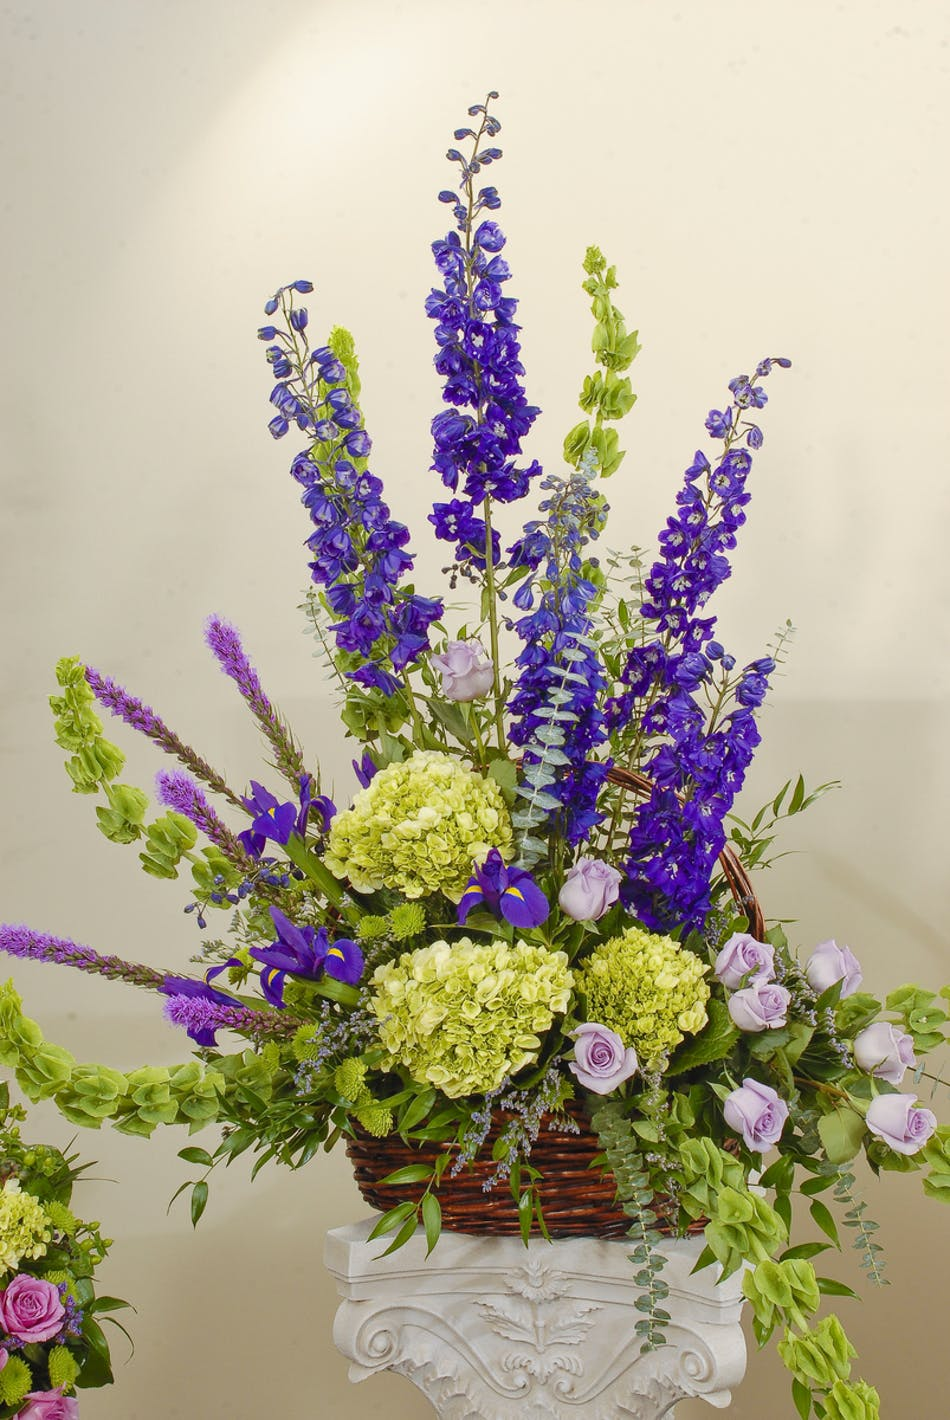 Basket design featuring roses and hydrangea in a mix of purple, green, and blue hues. Approximate size for the standard design is 20